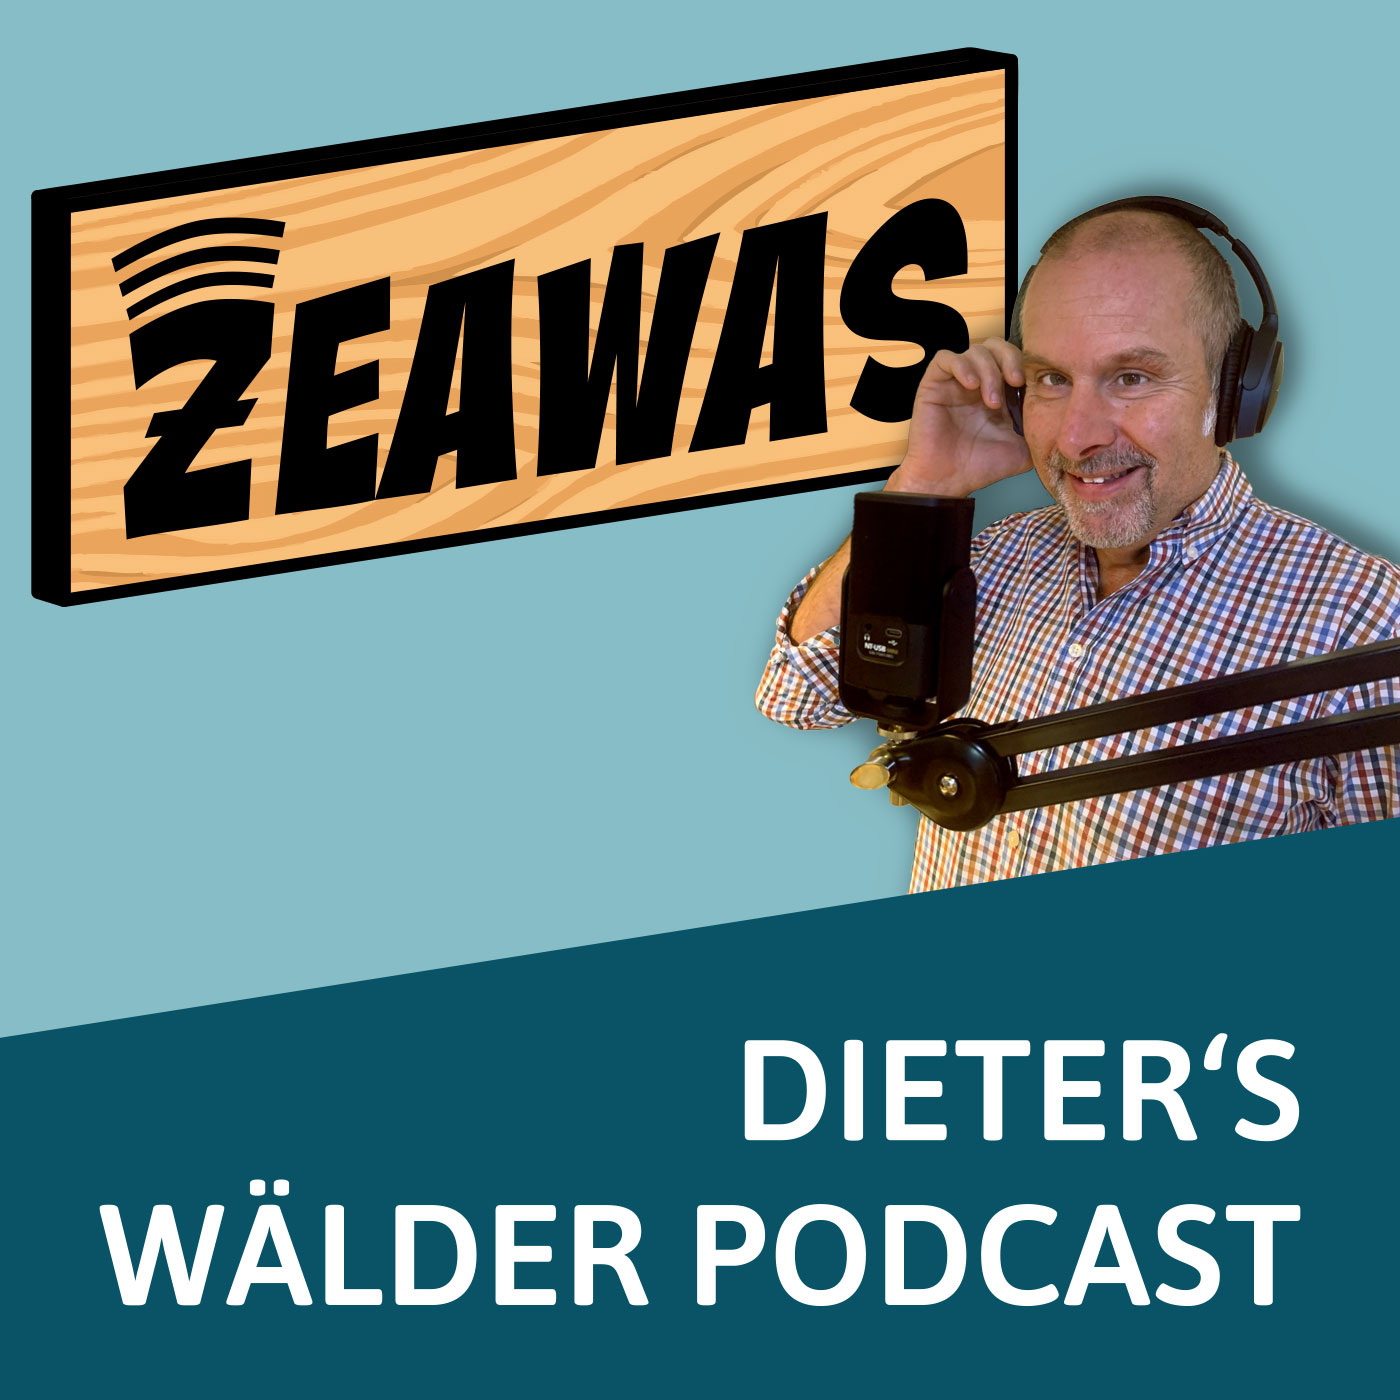 ZEAWAS - Dieter's Wälder Podcast Cover